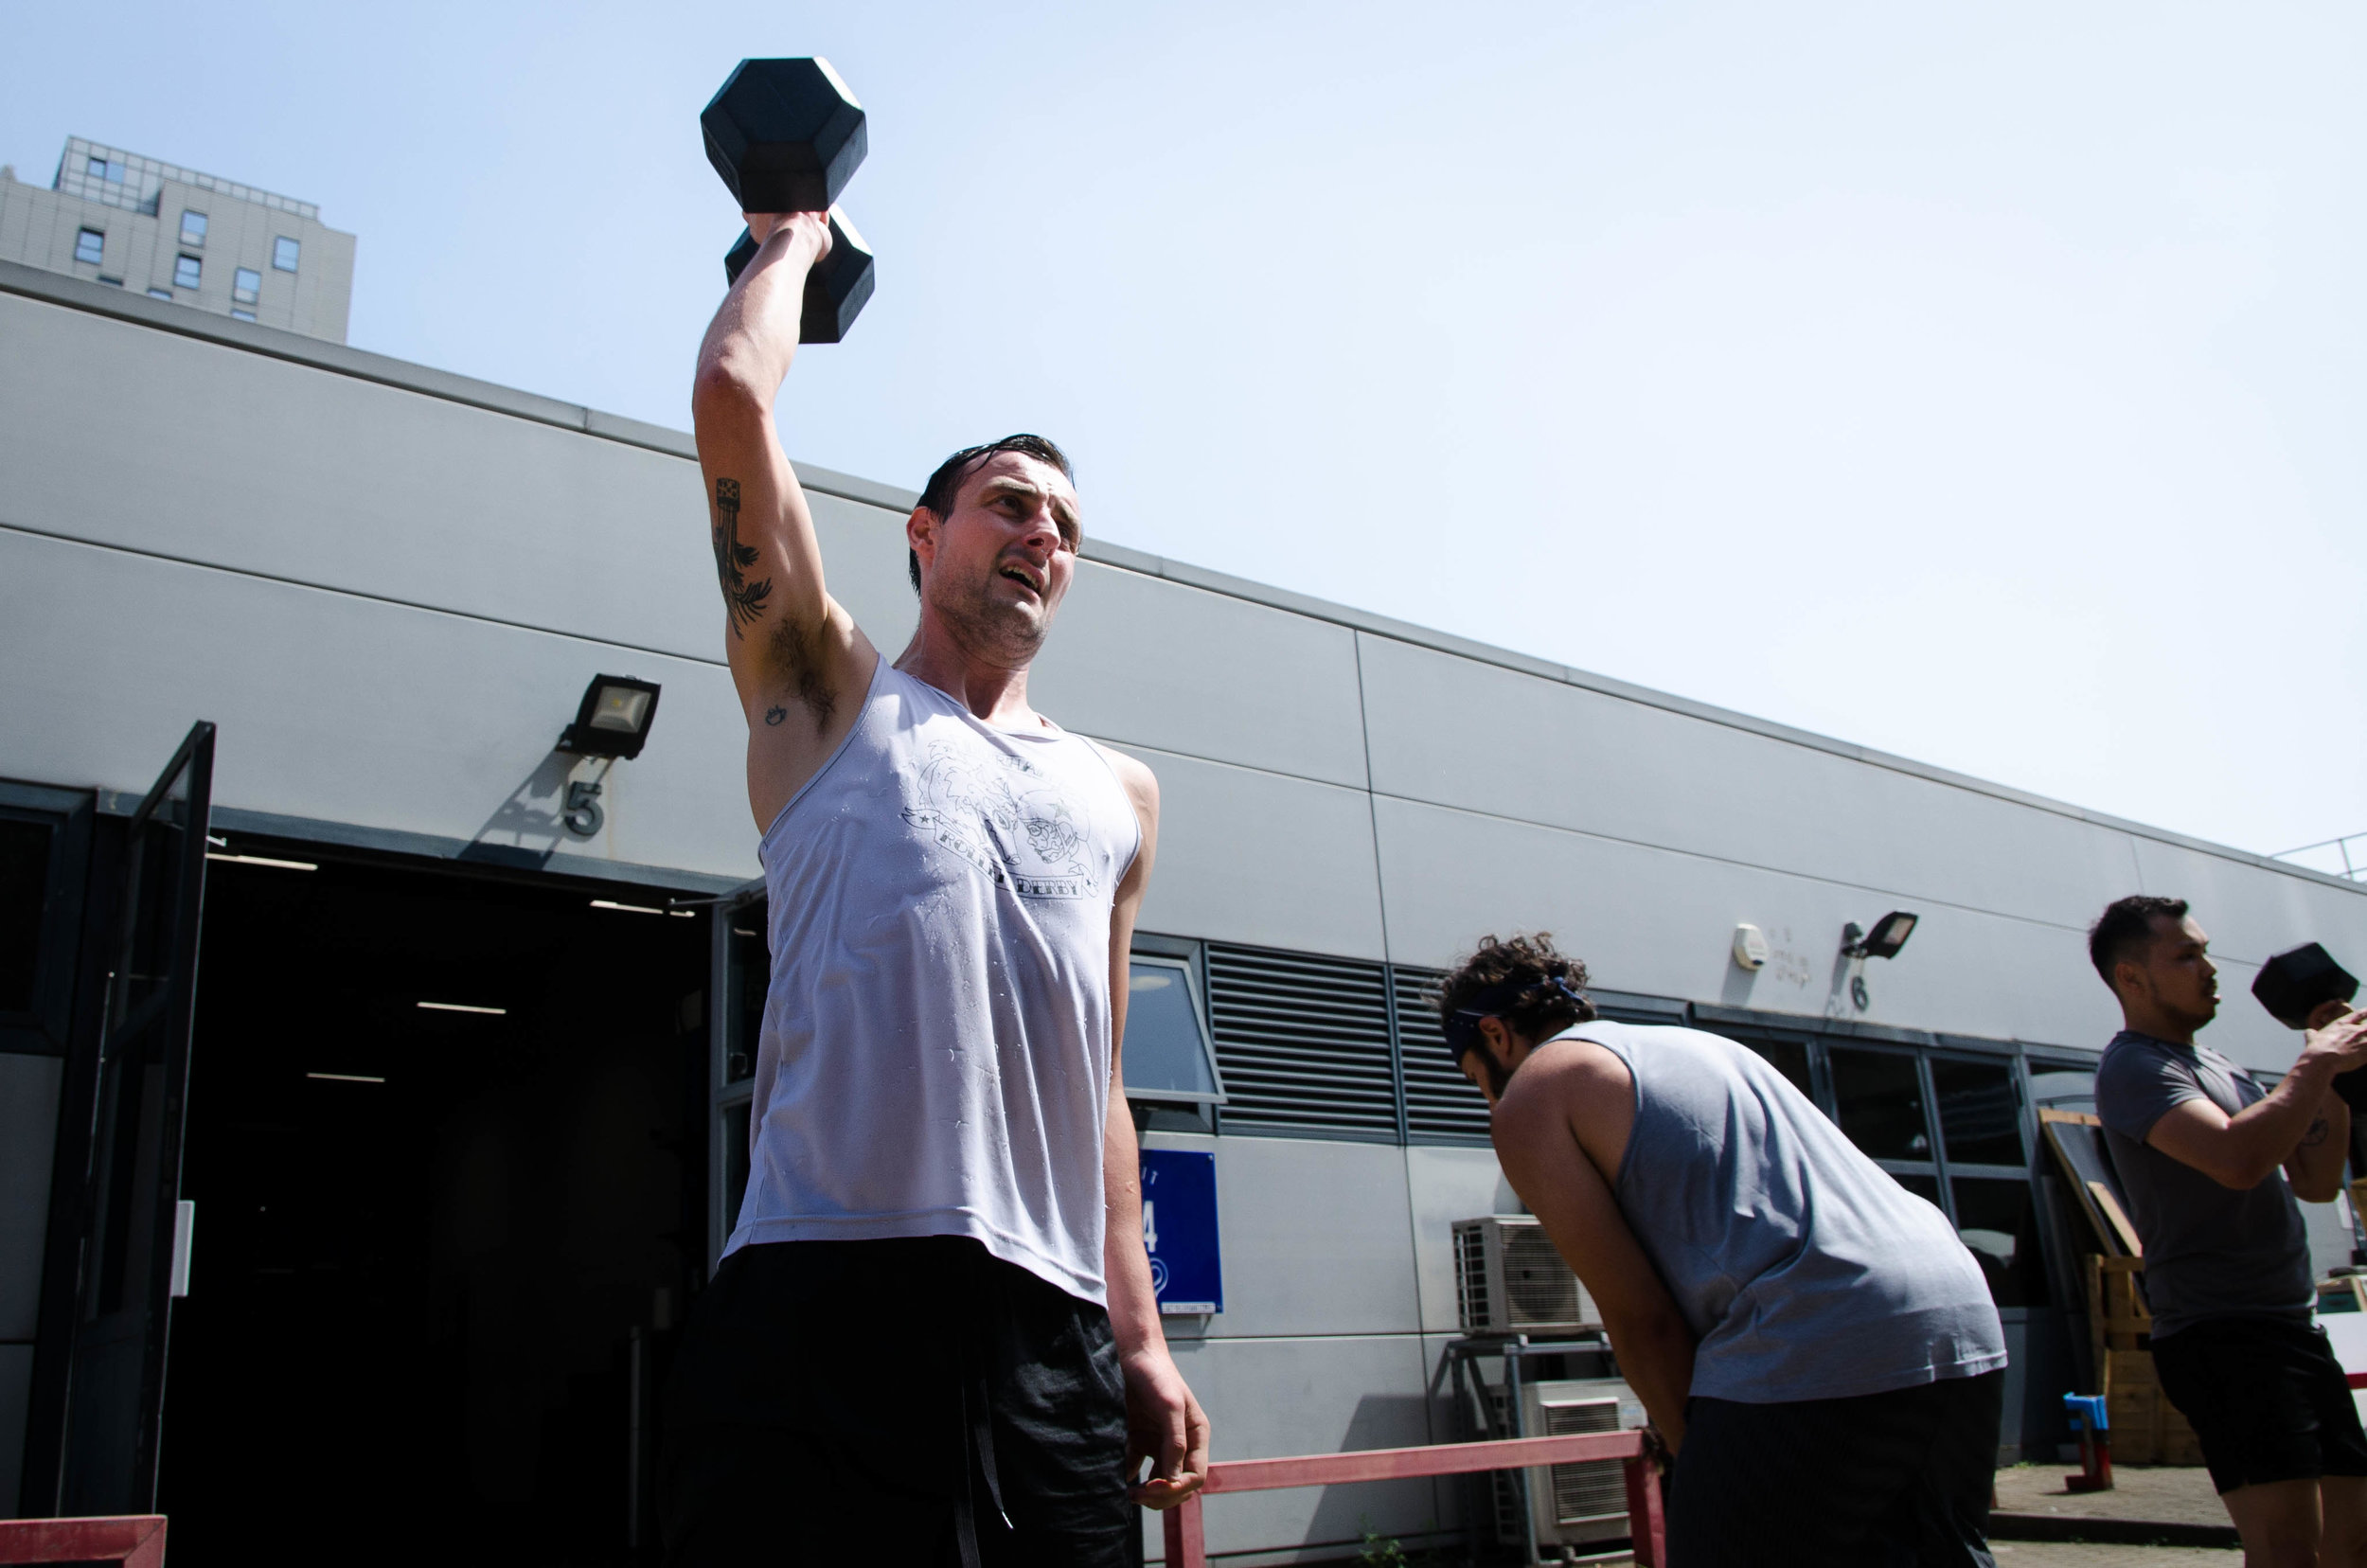 stuart_dumbbellsnatch-crossfit.jpg